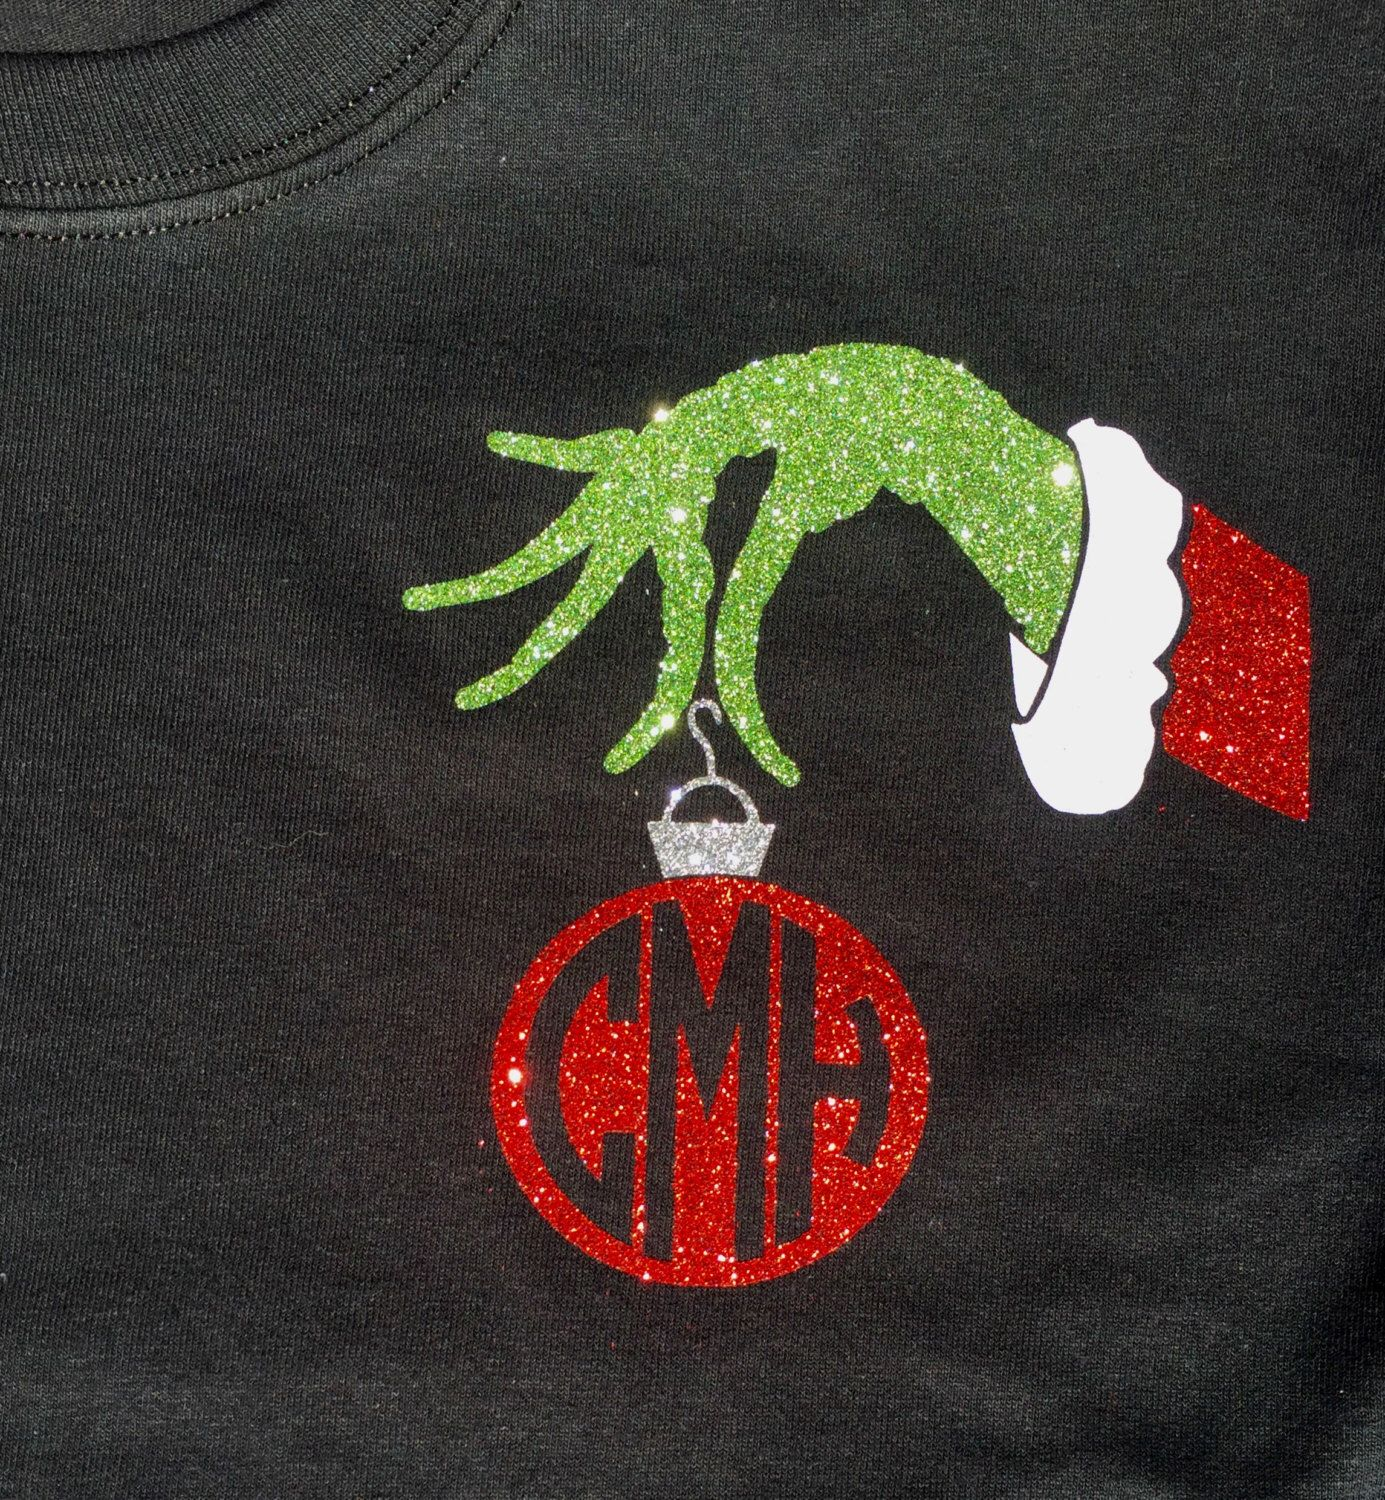 mr grinch ornament monogram shirt mr grinch ornament monogram shirt by ...